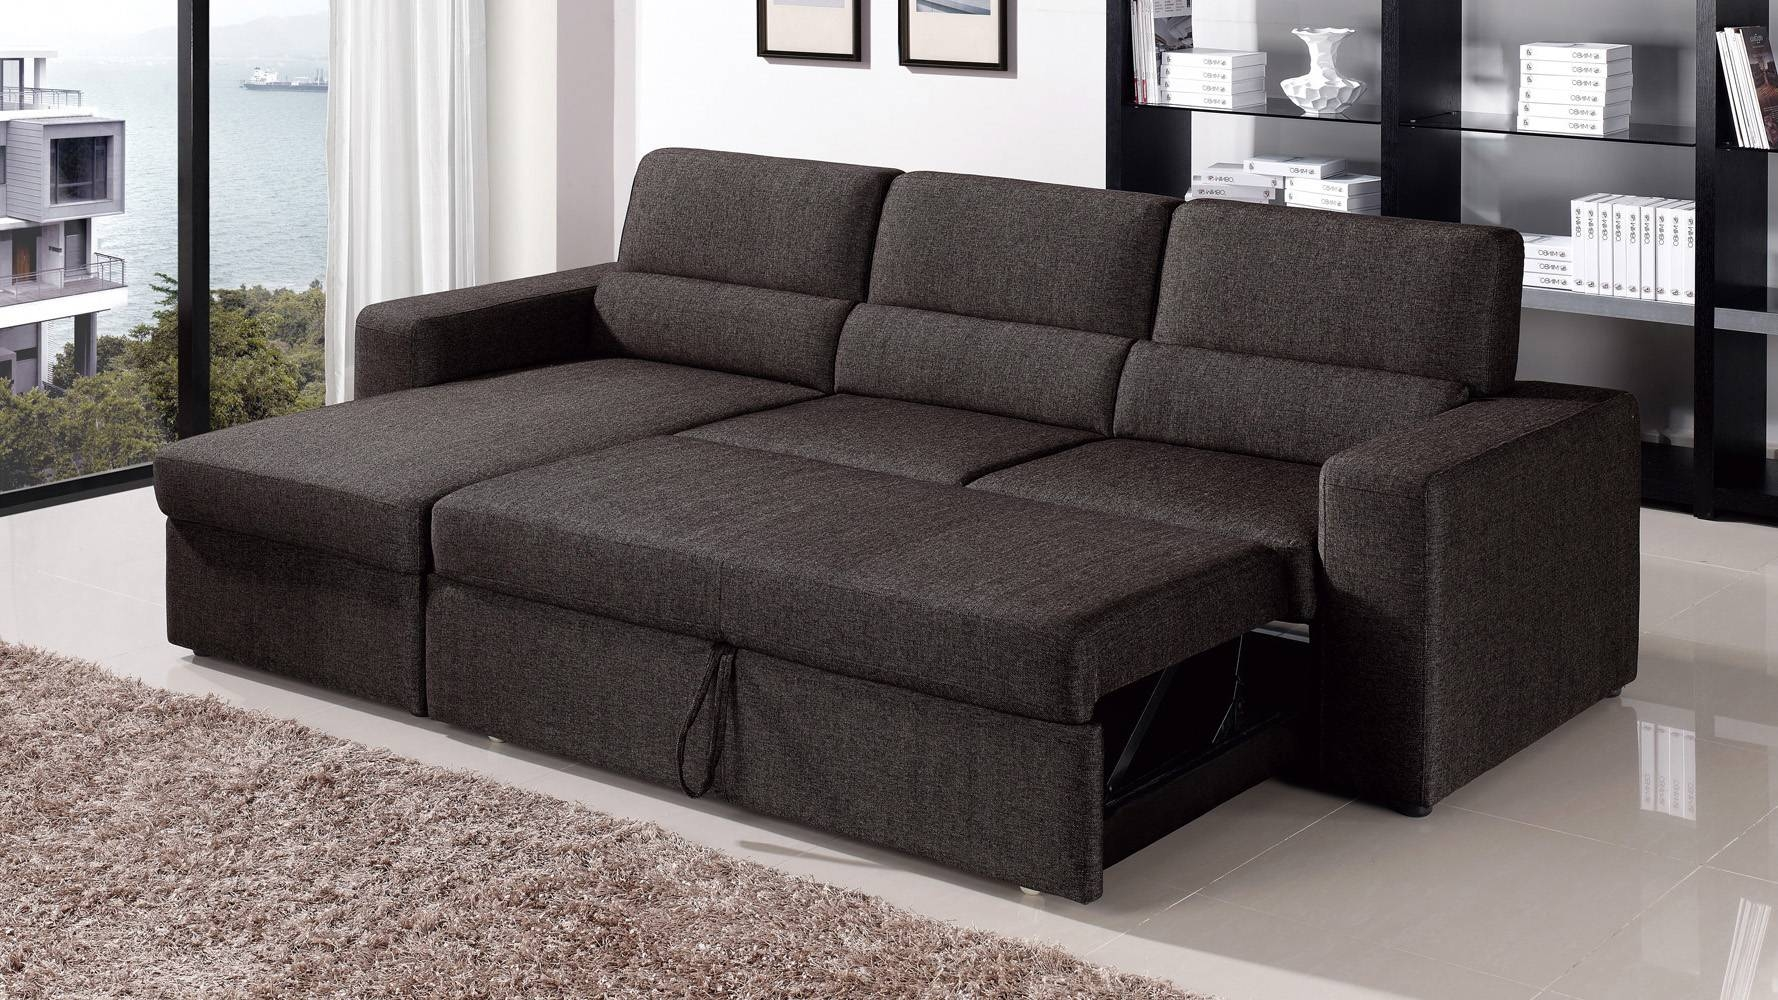 Black/brown Clubber Sleeper Sectional Sofa | Zuri Furniture for Sleeper Sectional Sofas (Image 2 of 30)